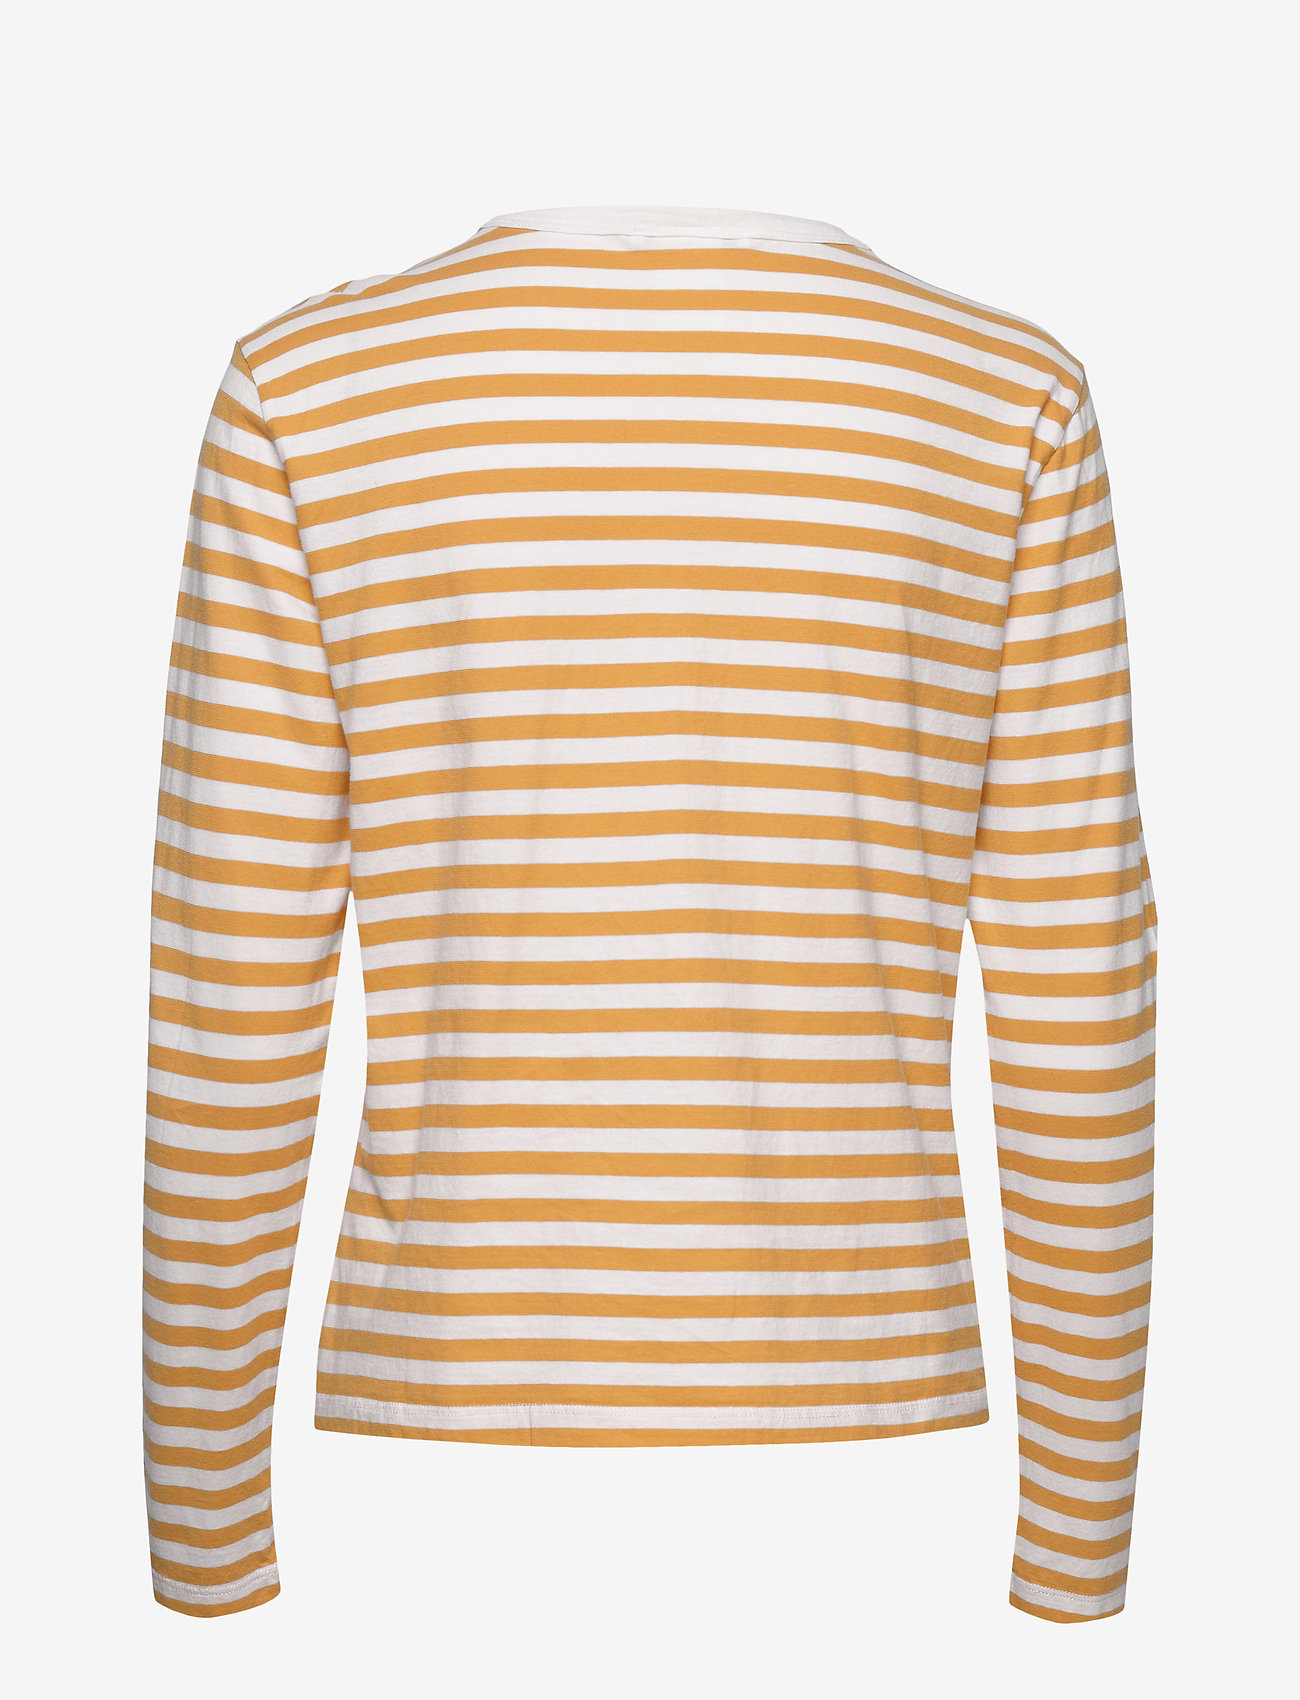 Hope Base LS Tee - T-shirty i zopy ORANGE STRIPE - Kobiety Odzież.